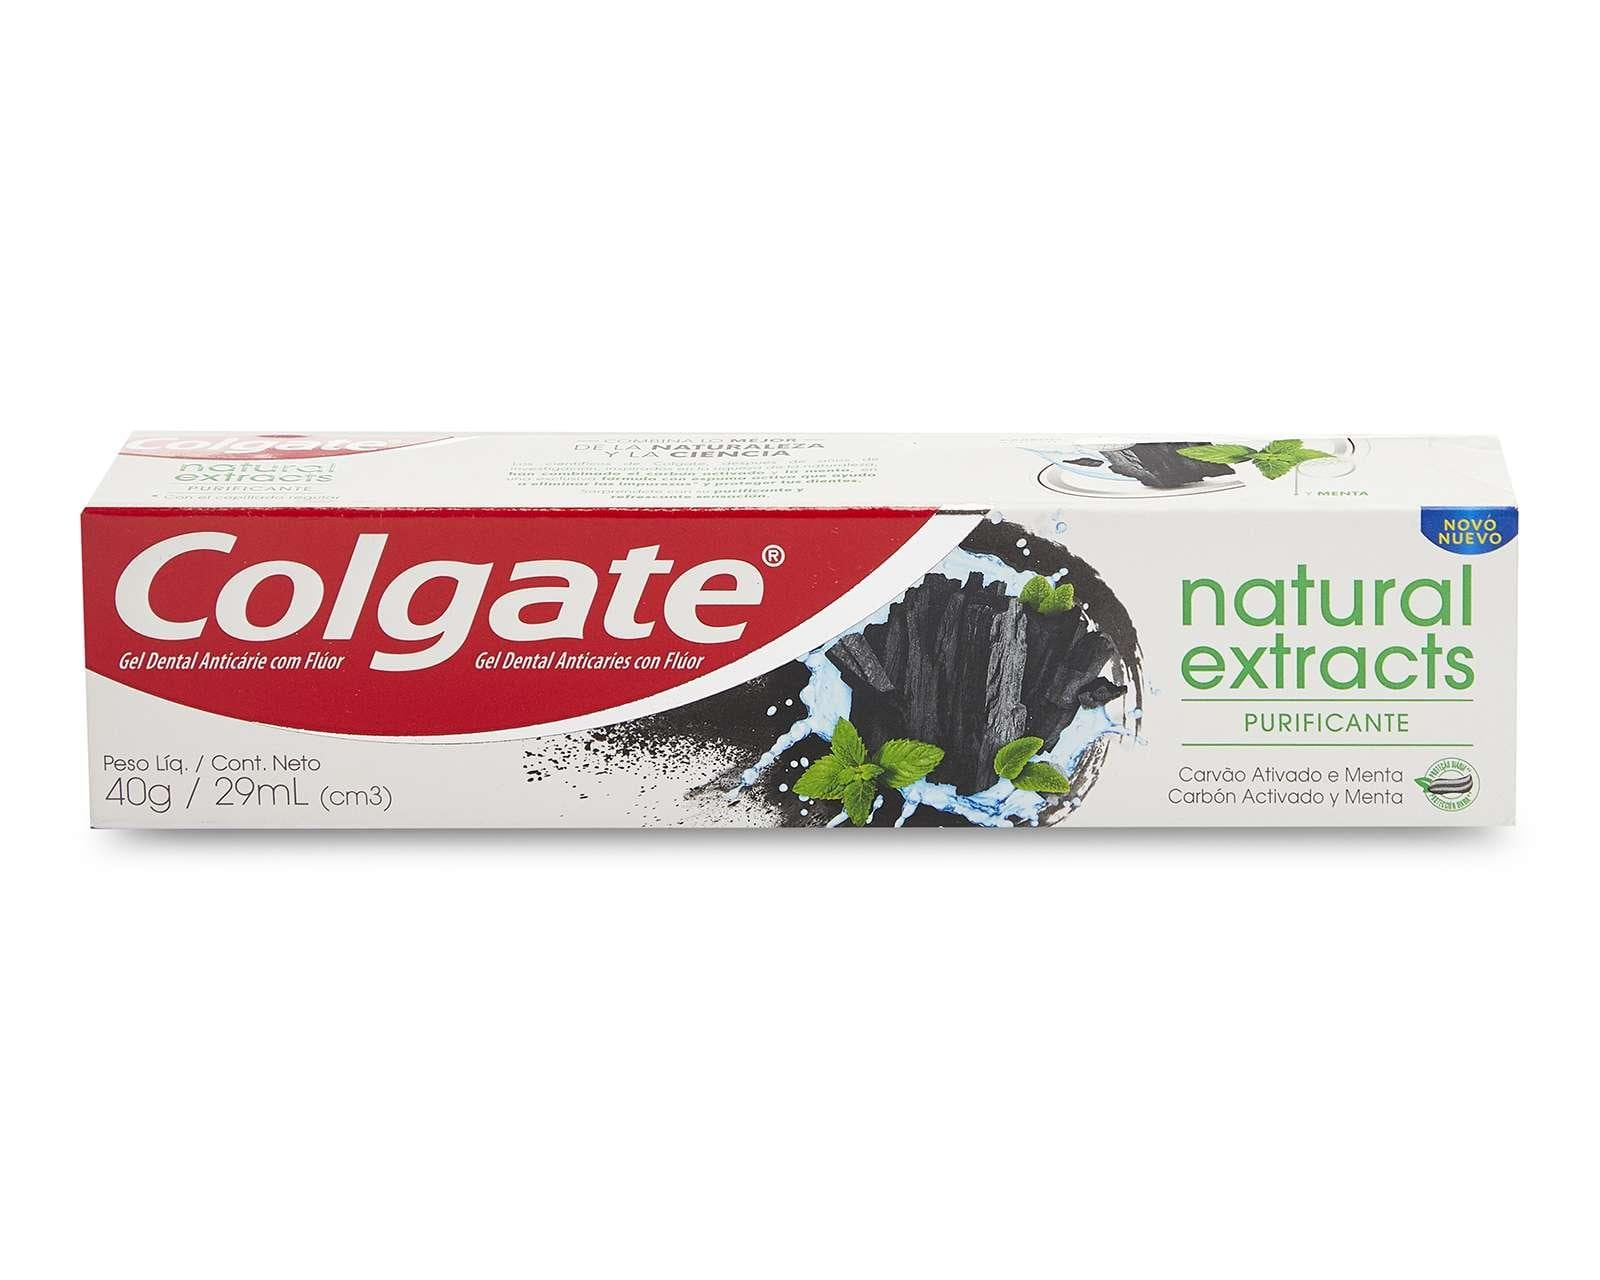 Pasta Dental Colgate Natural Extracts Purificante